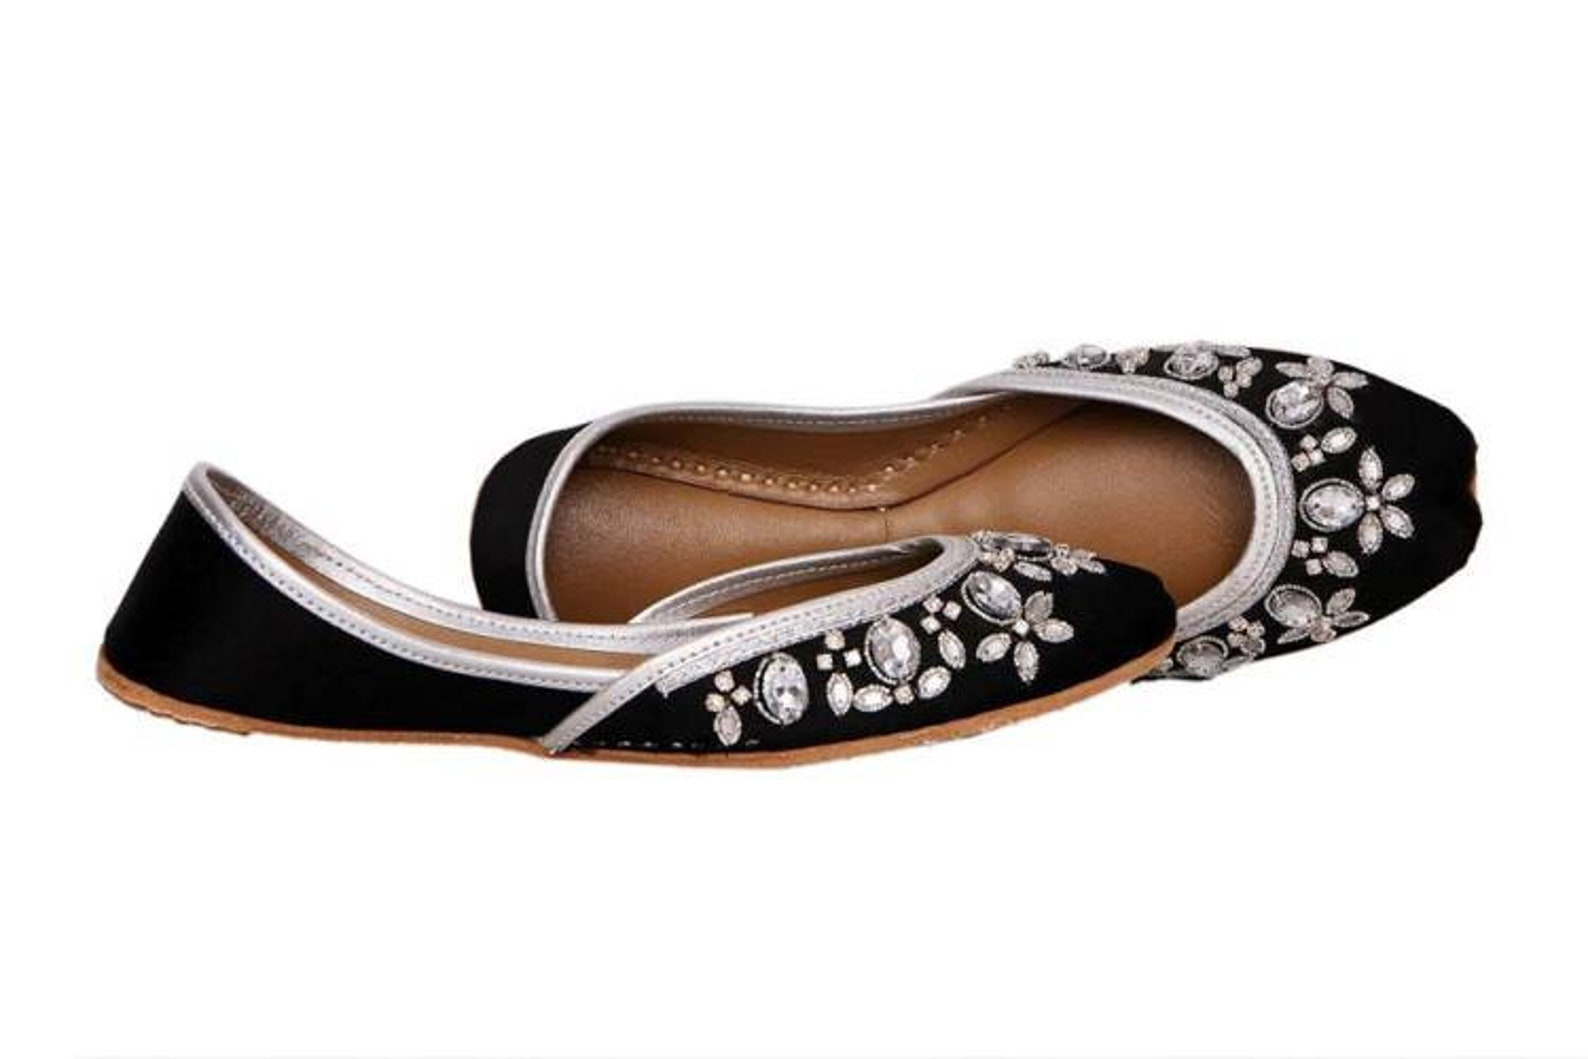 handmade embellished black women flat shoes ballet flats kundan khussa juti ethnic shoes brooch bridal shoes mojari indian jutti